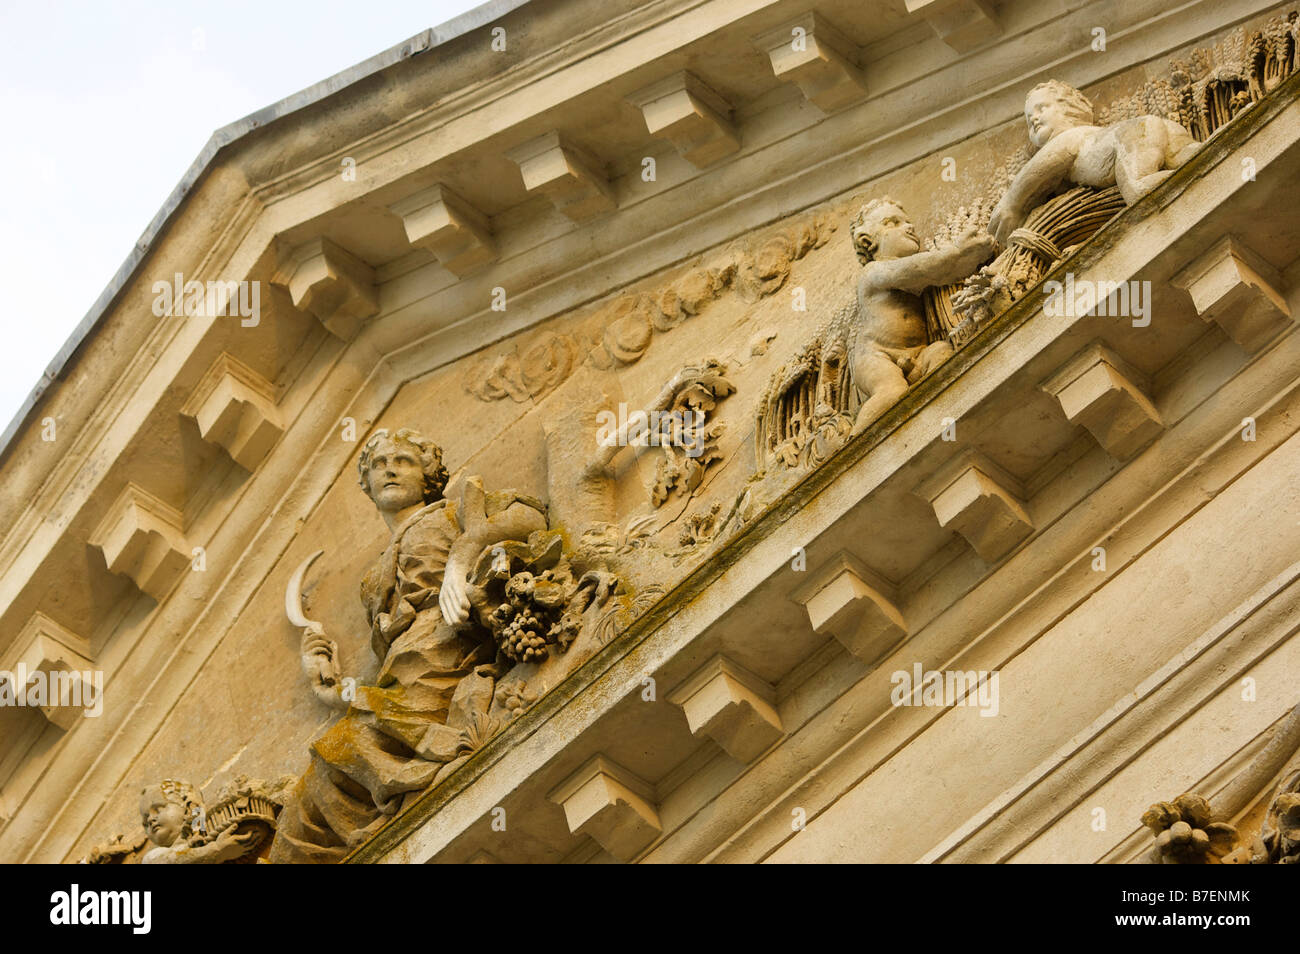 Detail of the sculpture on the pediment of the grade 1 listed 18th century mansion Kirtlinton Park near Oxford UK - Stock Image